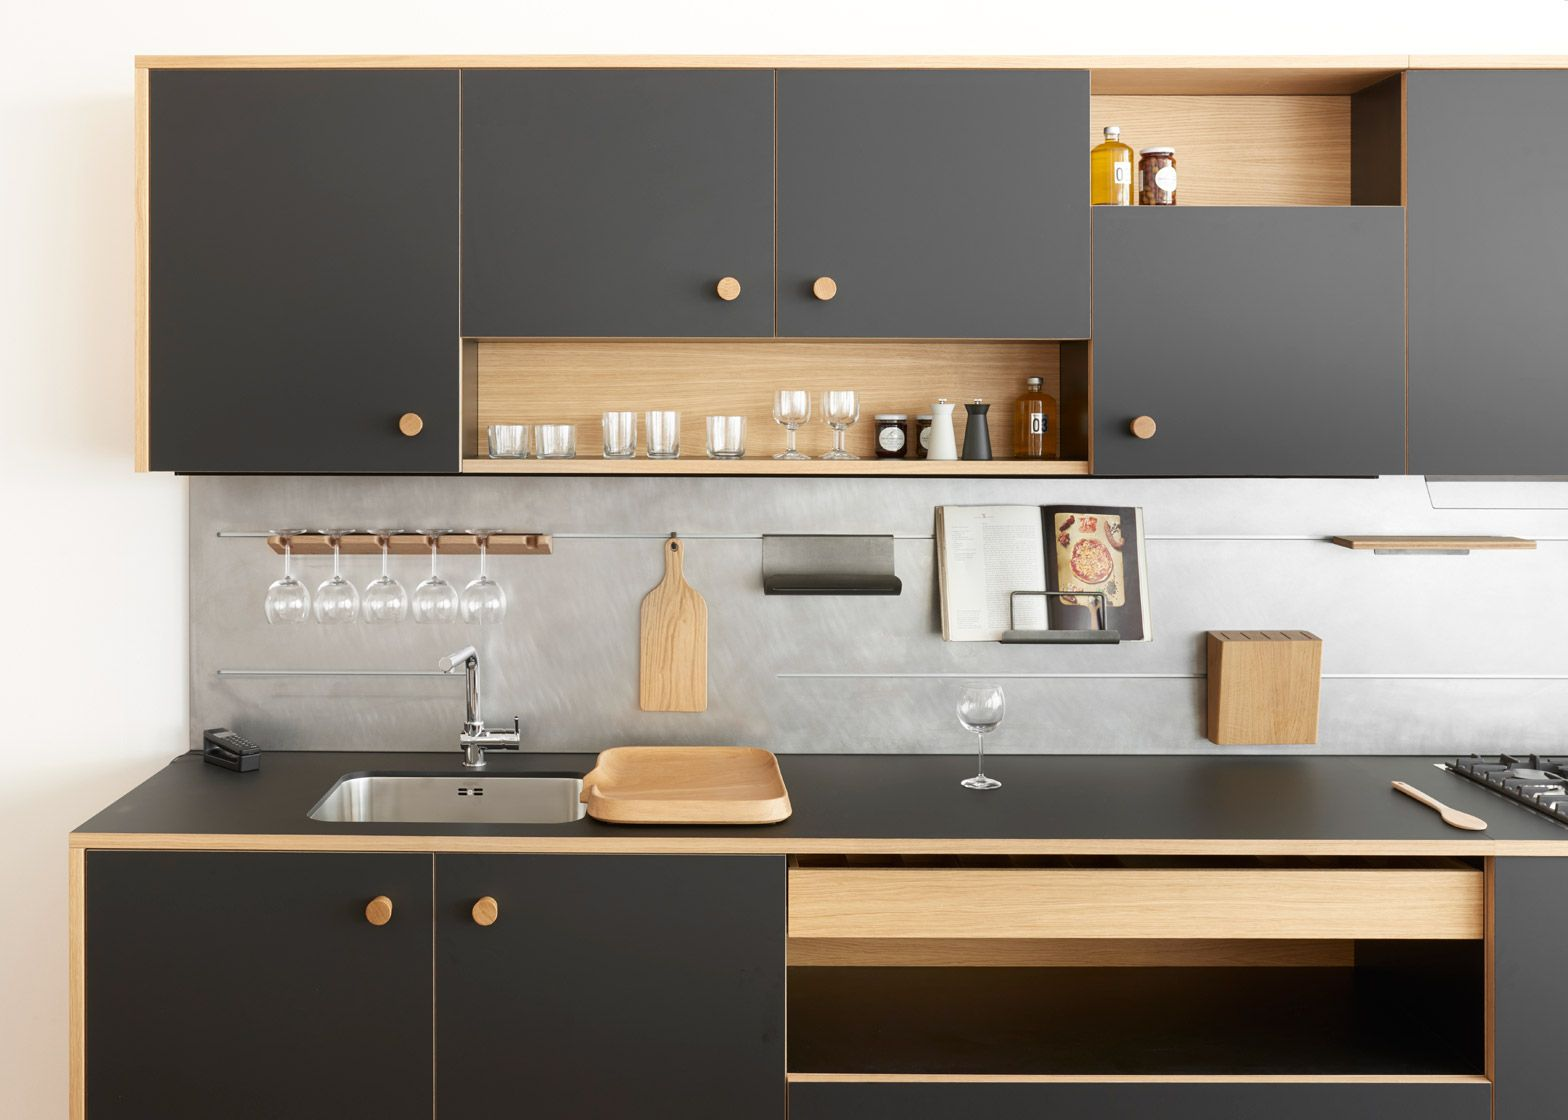 Kitchen Design Companies Entrancing Jasper Morrison Reveals First Kitchen Design For Schiffini Decorating Inspiration